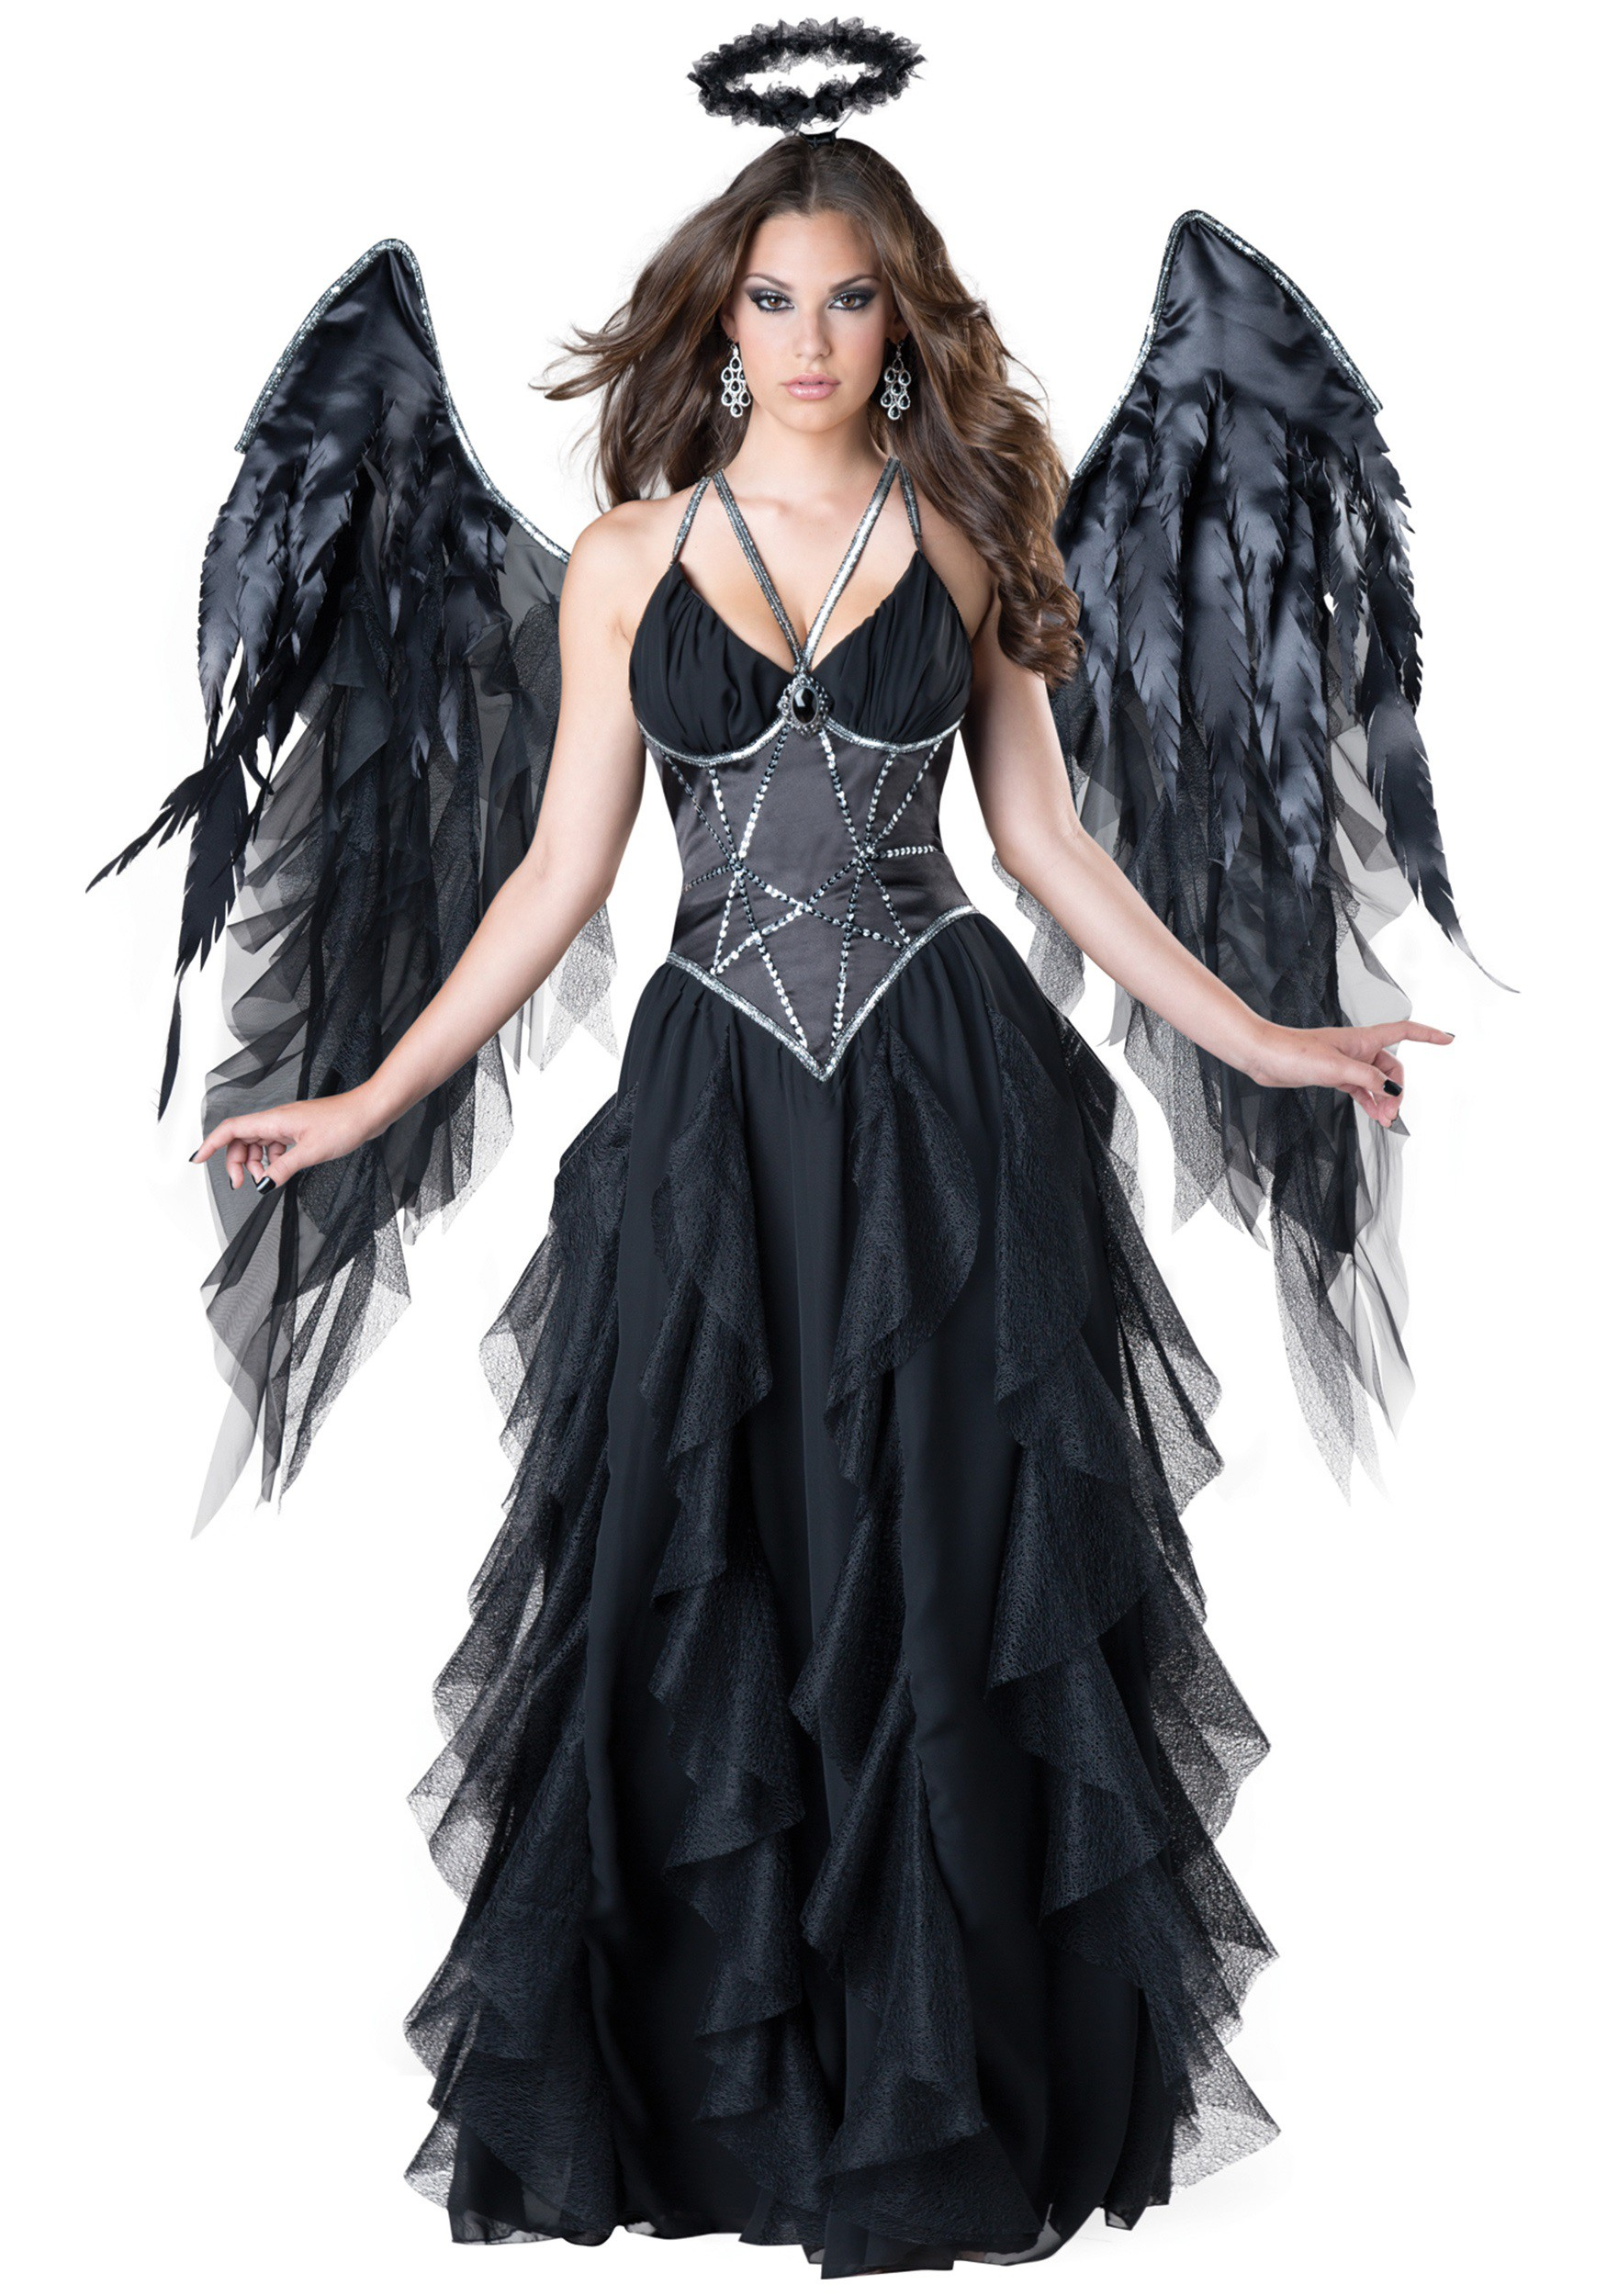 women 39 s dark angel costume. Black Bedroom Furniture Sets. Home Design Ideas